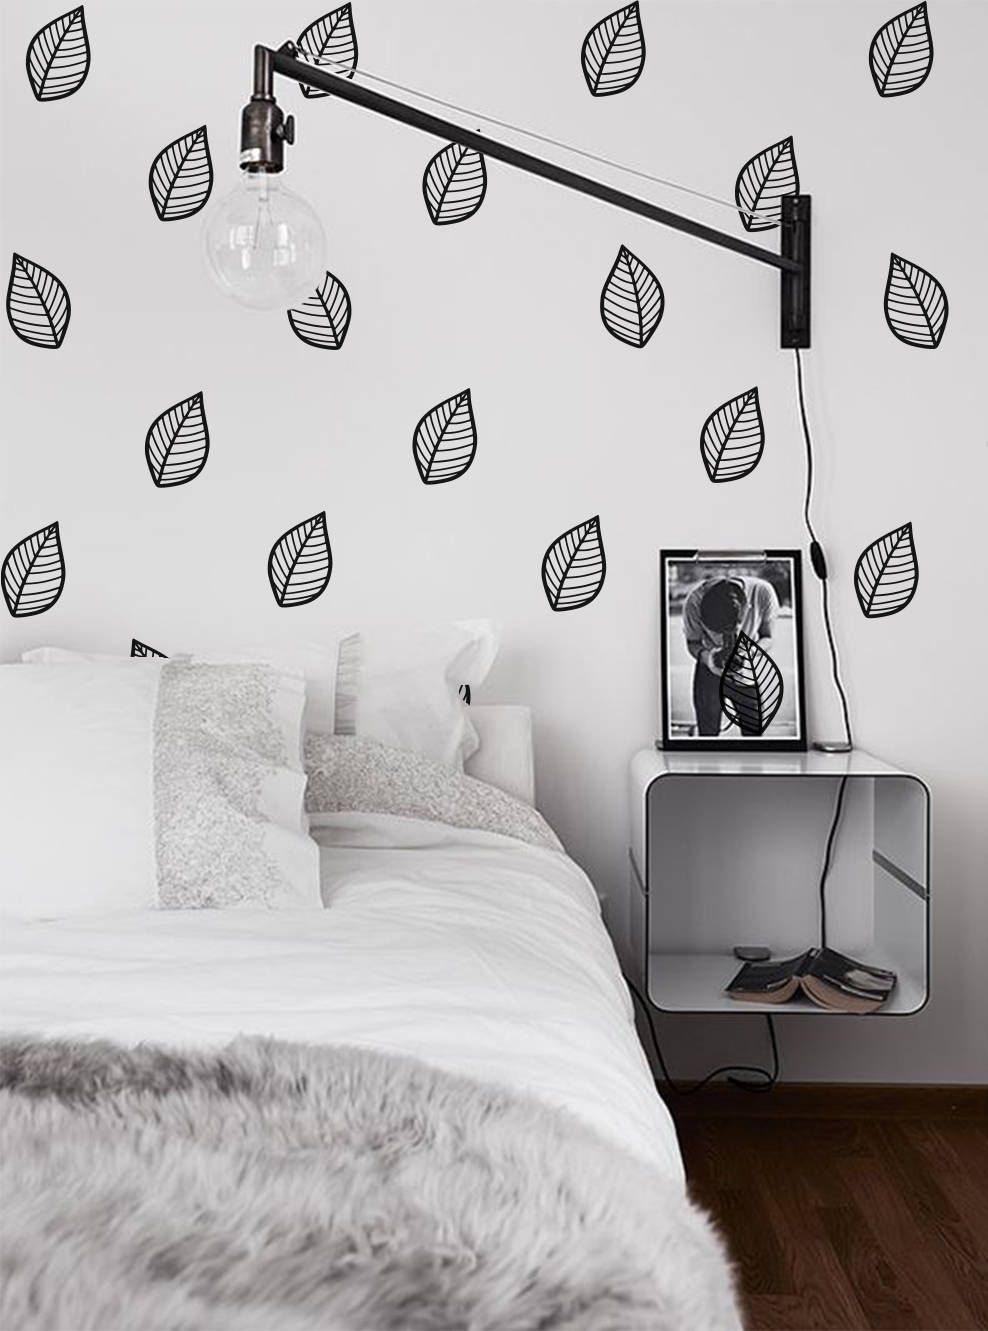 Leaves Wall Decals Leaf Vinyl Decals Nursery Wall Decals Dorm